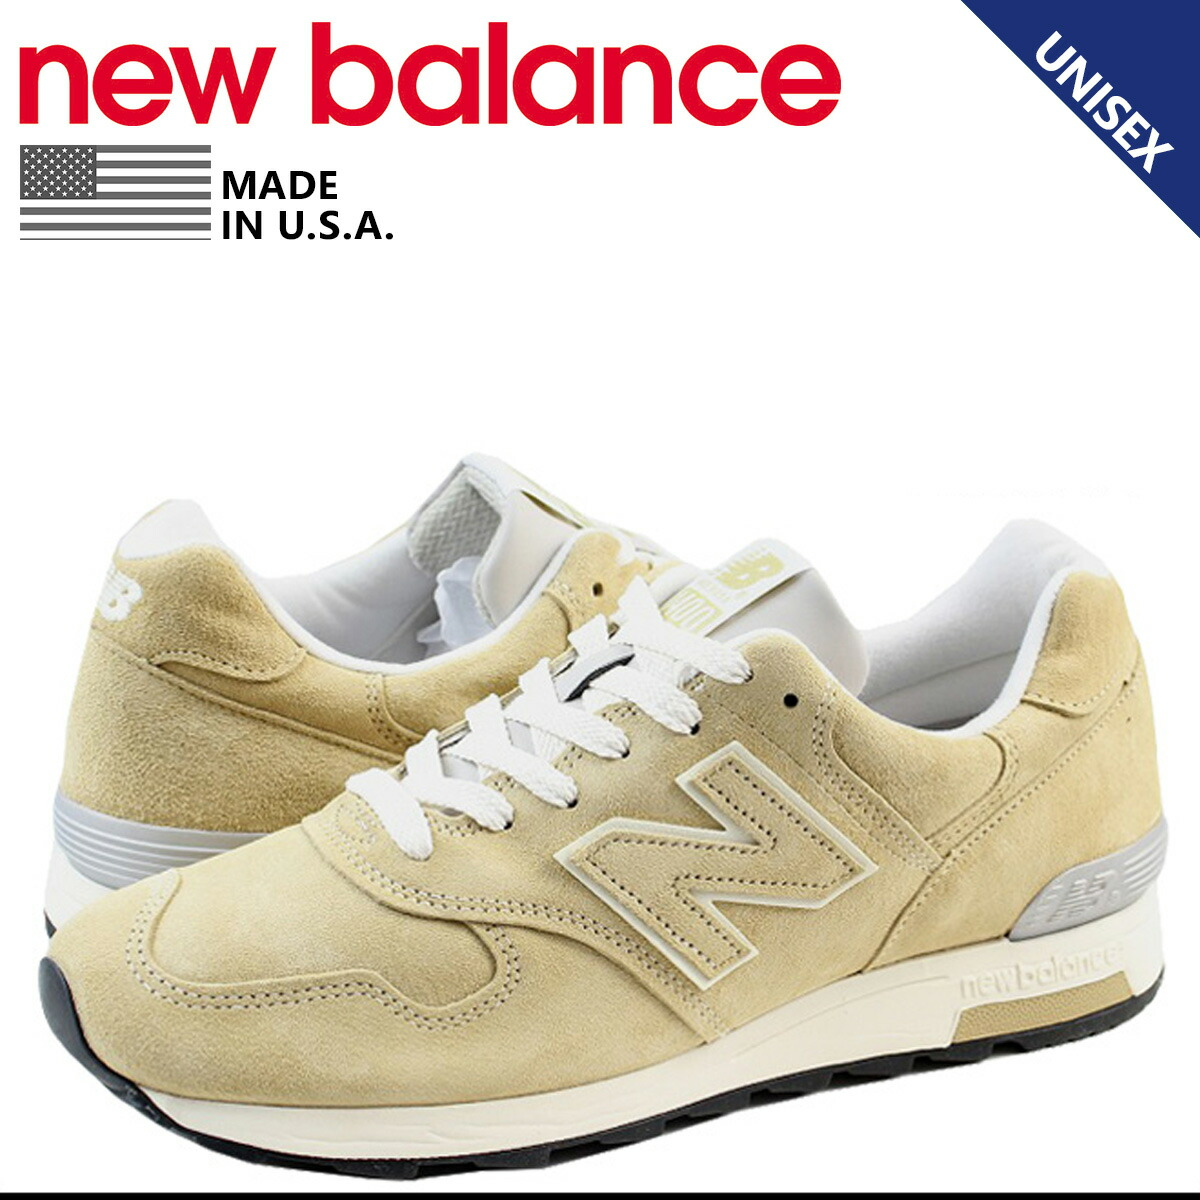 official photos 5b124 4ad18 new balance 1400 men's lady's New Balance sneakers M1400BE D Wise shoes  beige